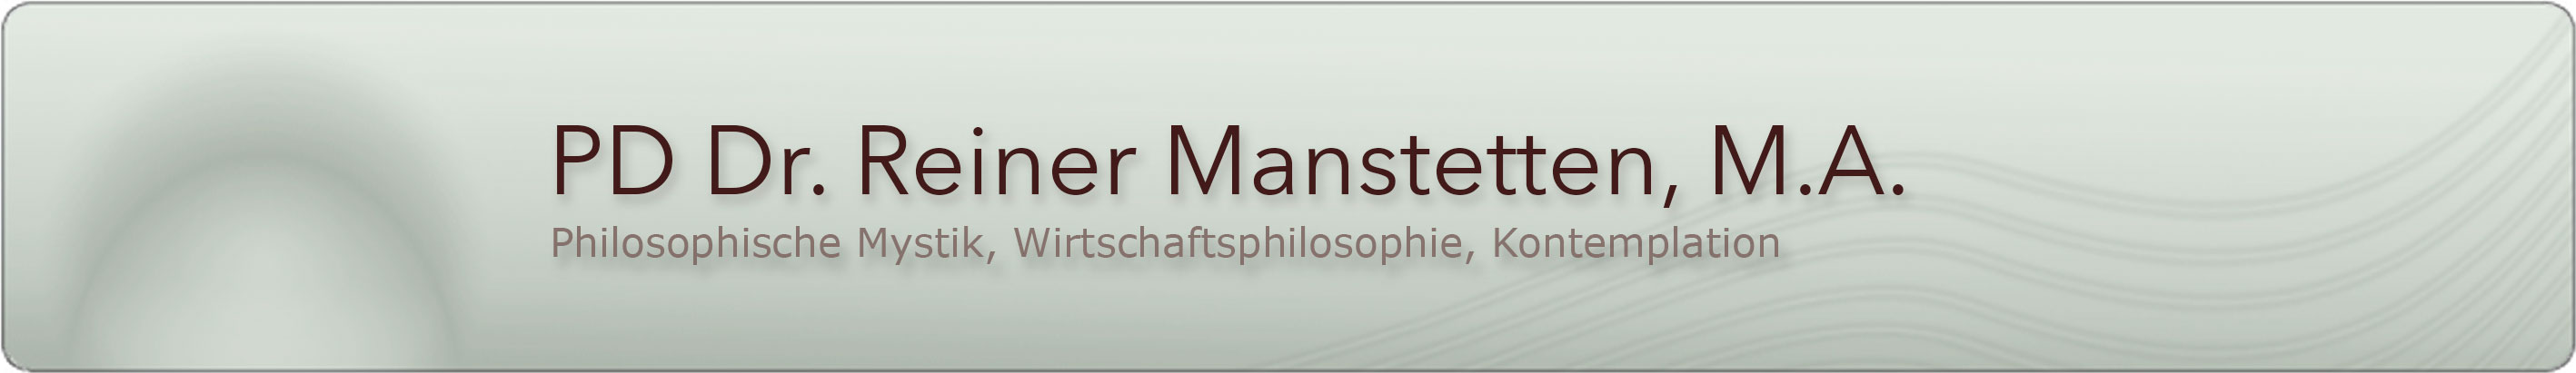 PD Dr. Reiner Manstetten, M.A. - Website Banner